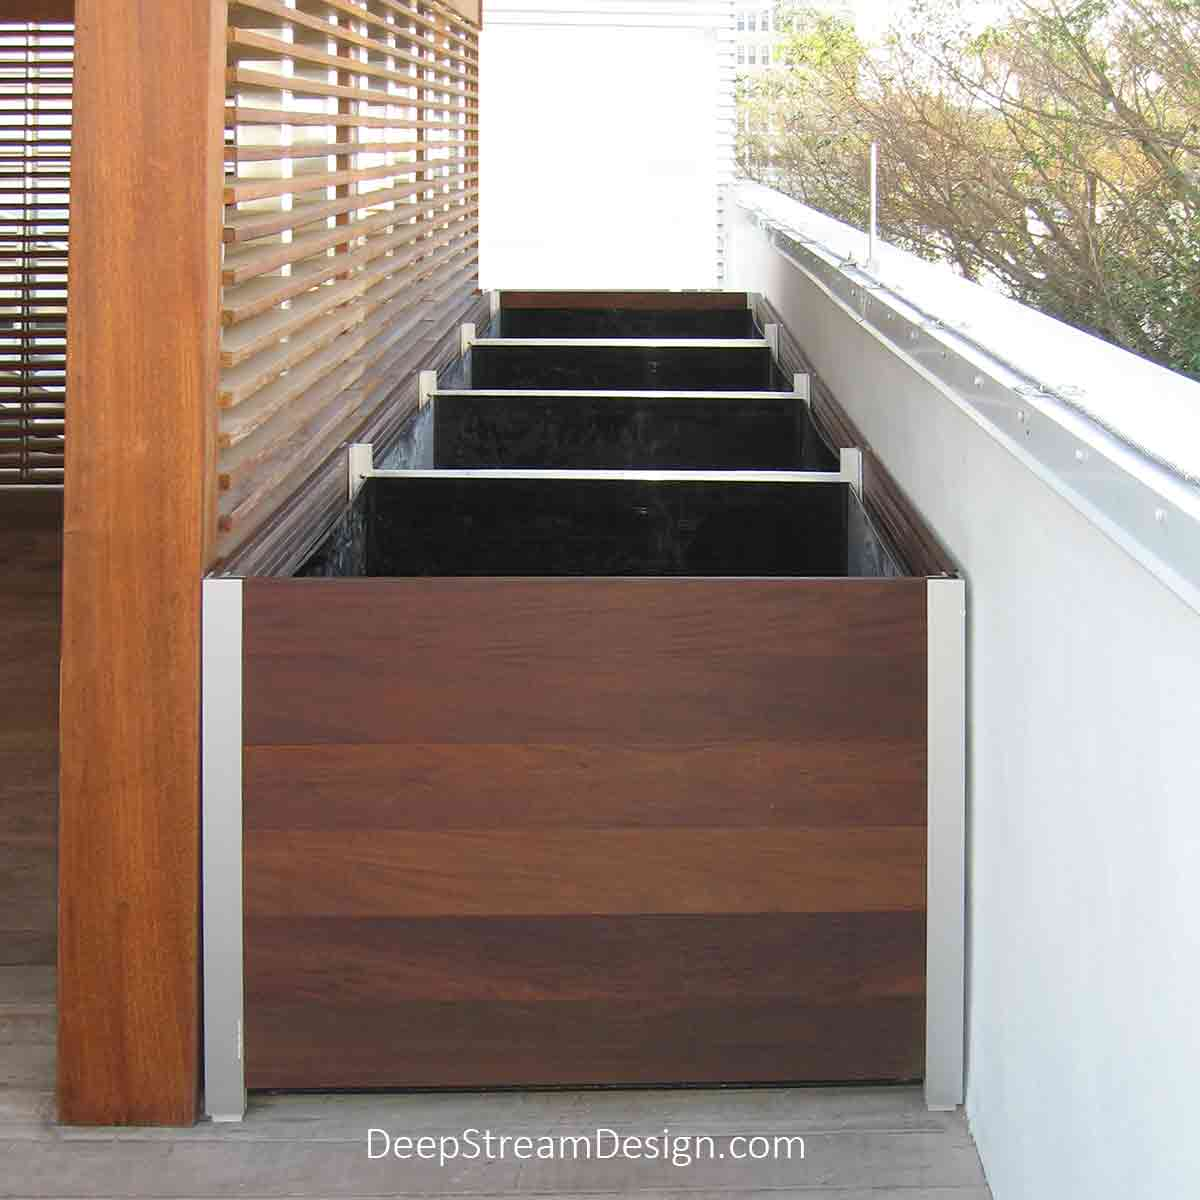 Every DeepStream planter uses proprietary anodized aluminum legs and engineered frame system to create custom Large Wood Planters for Trees and planter liners to exact dimensions at no extra cost ,as shown here between walls atop a chic Miami boutique hotel.